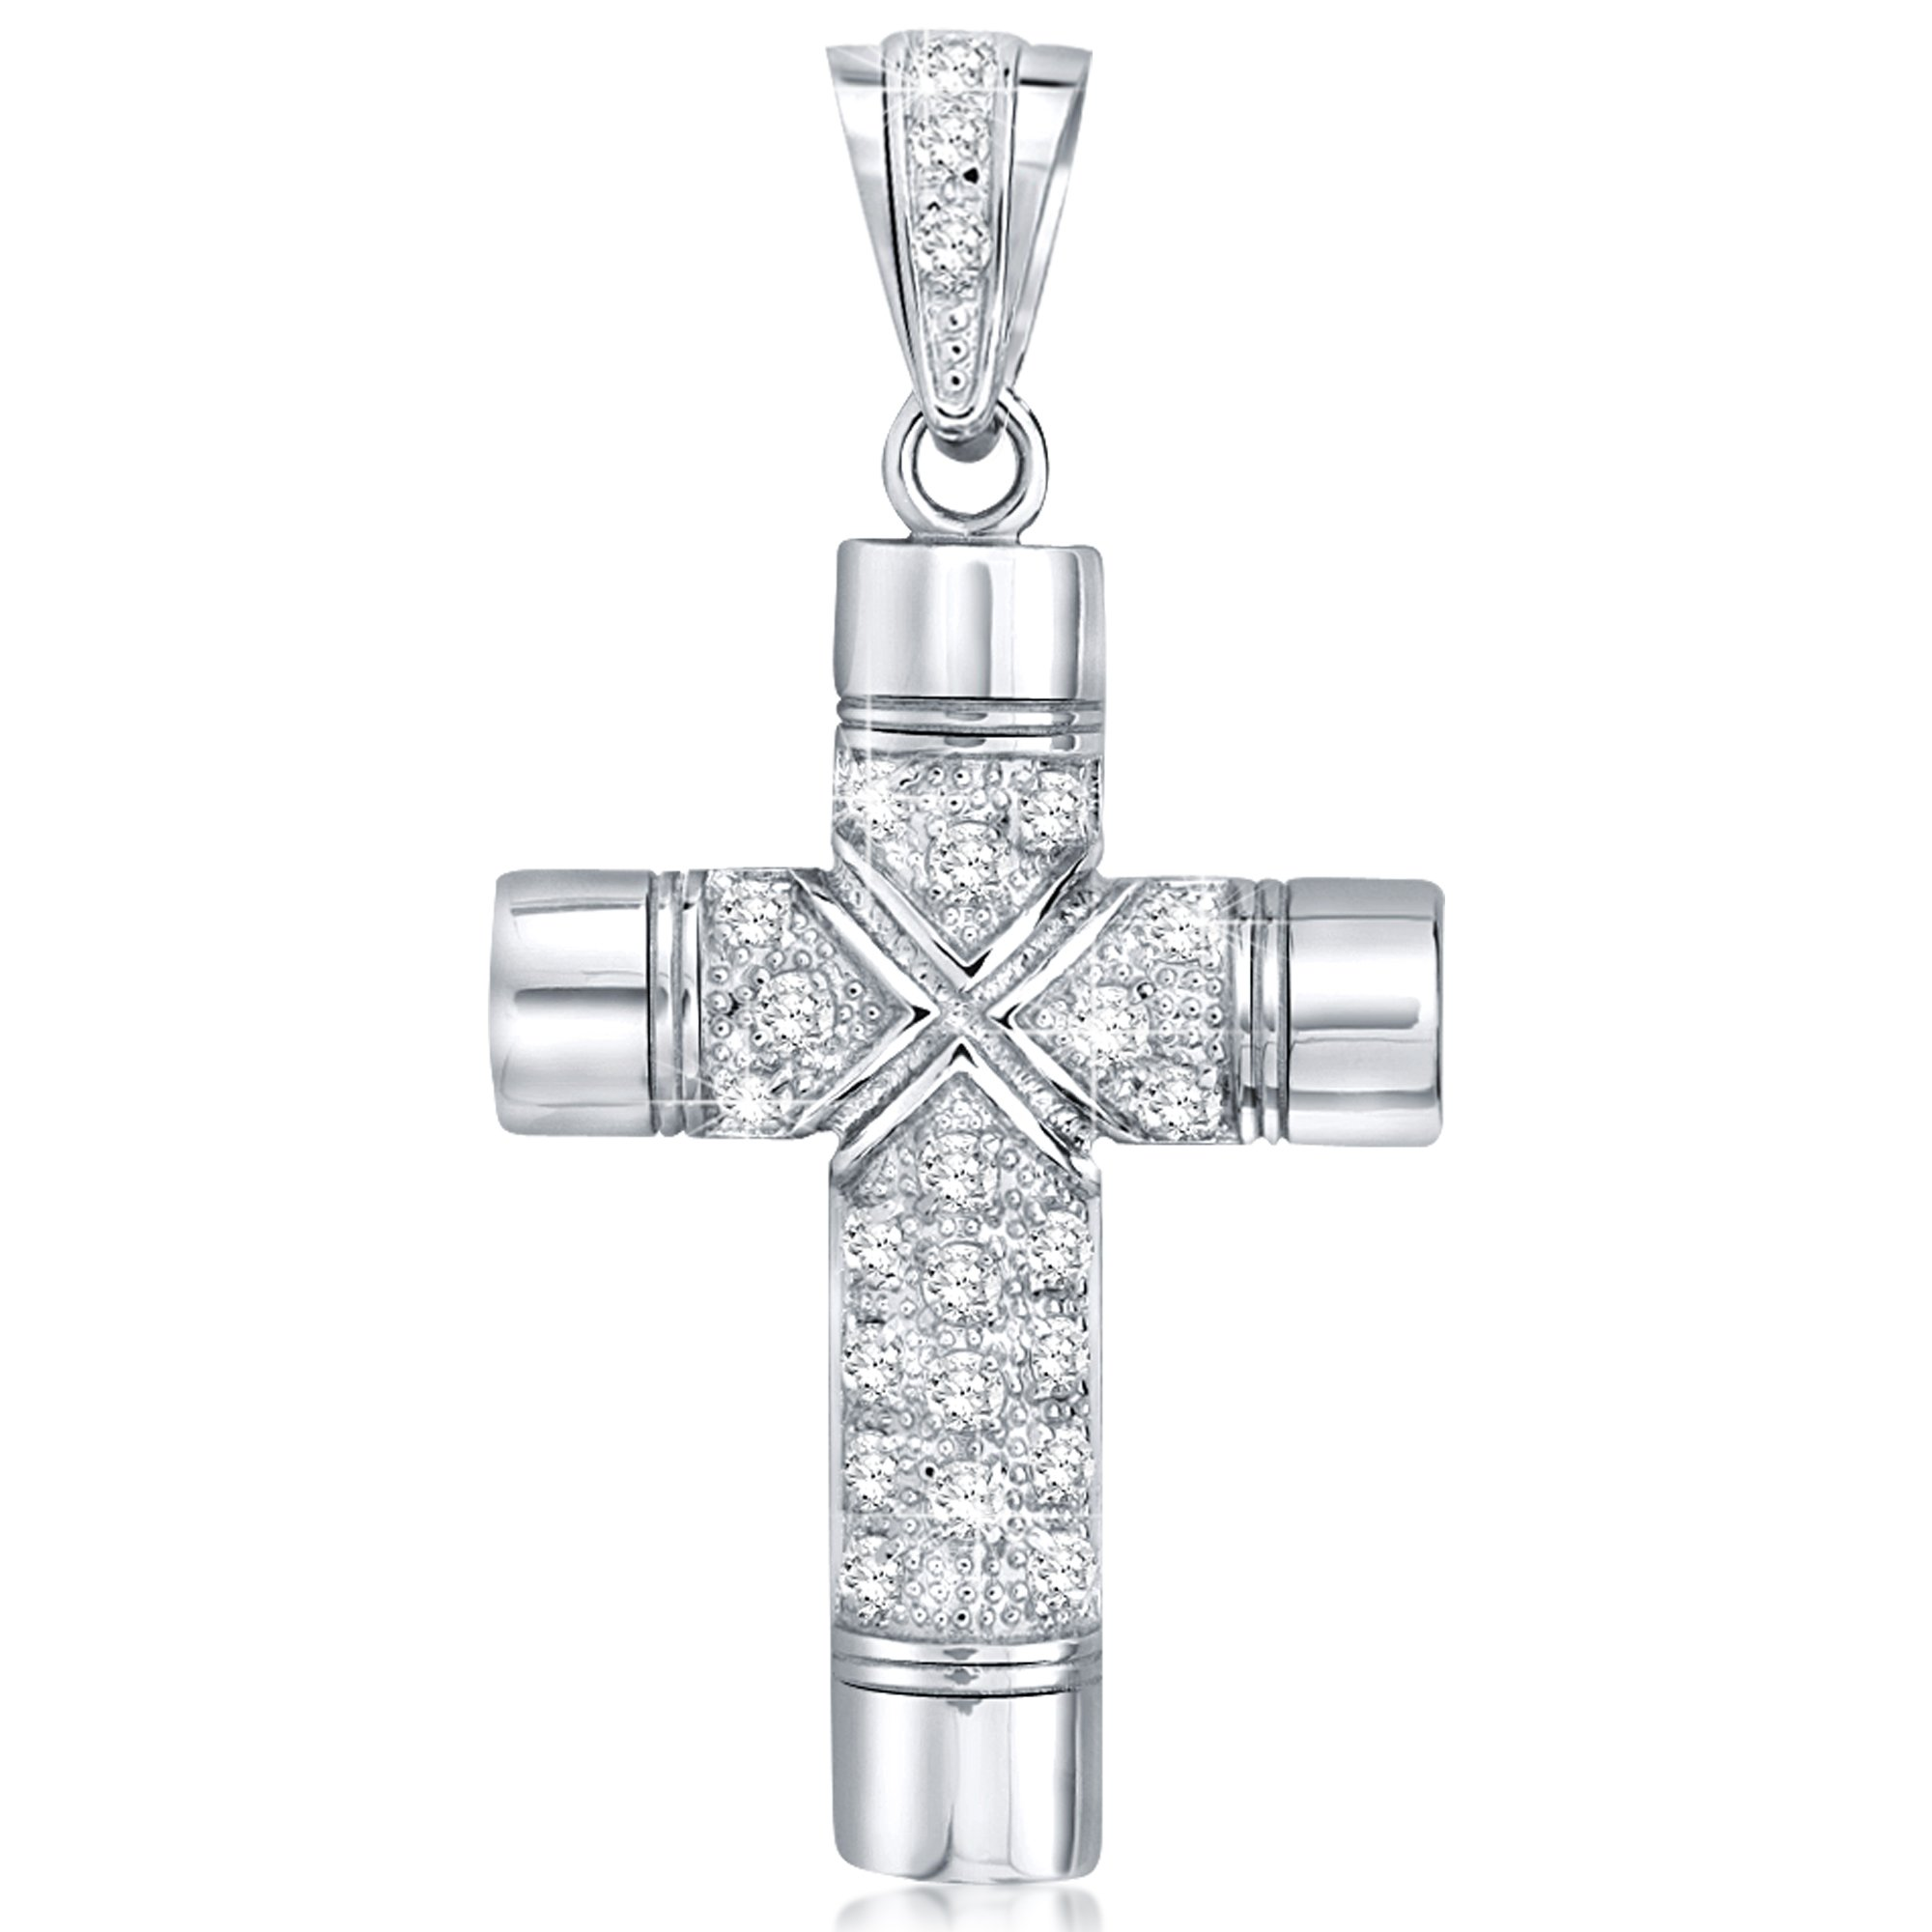 Sterling Silver .925 Large Cross Pendant with Round Cubic Zirconia Stone's. Large Bail to fit Wide Chains, Hand Polished, Platinum Plated, Appears Identical to Platinum or White Gold.